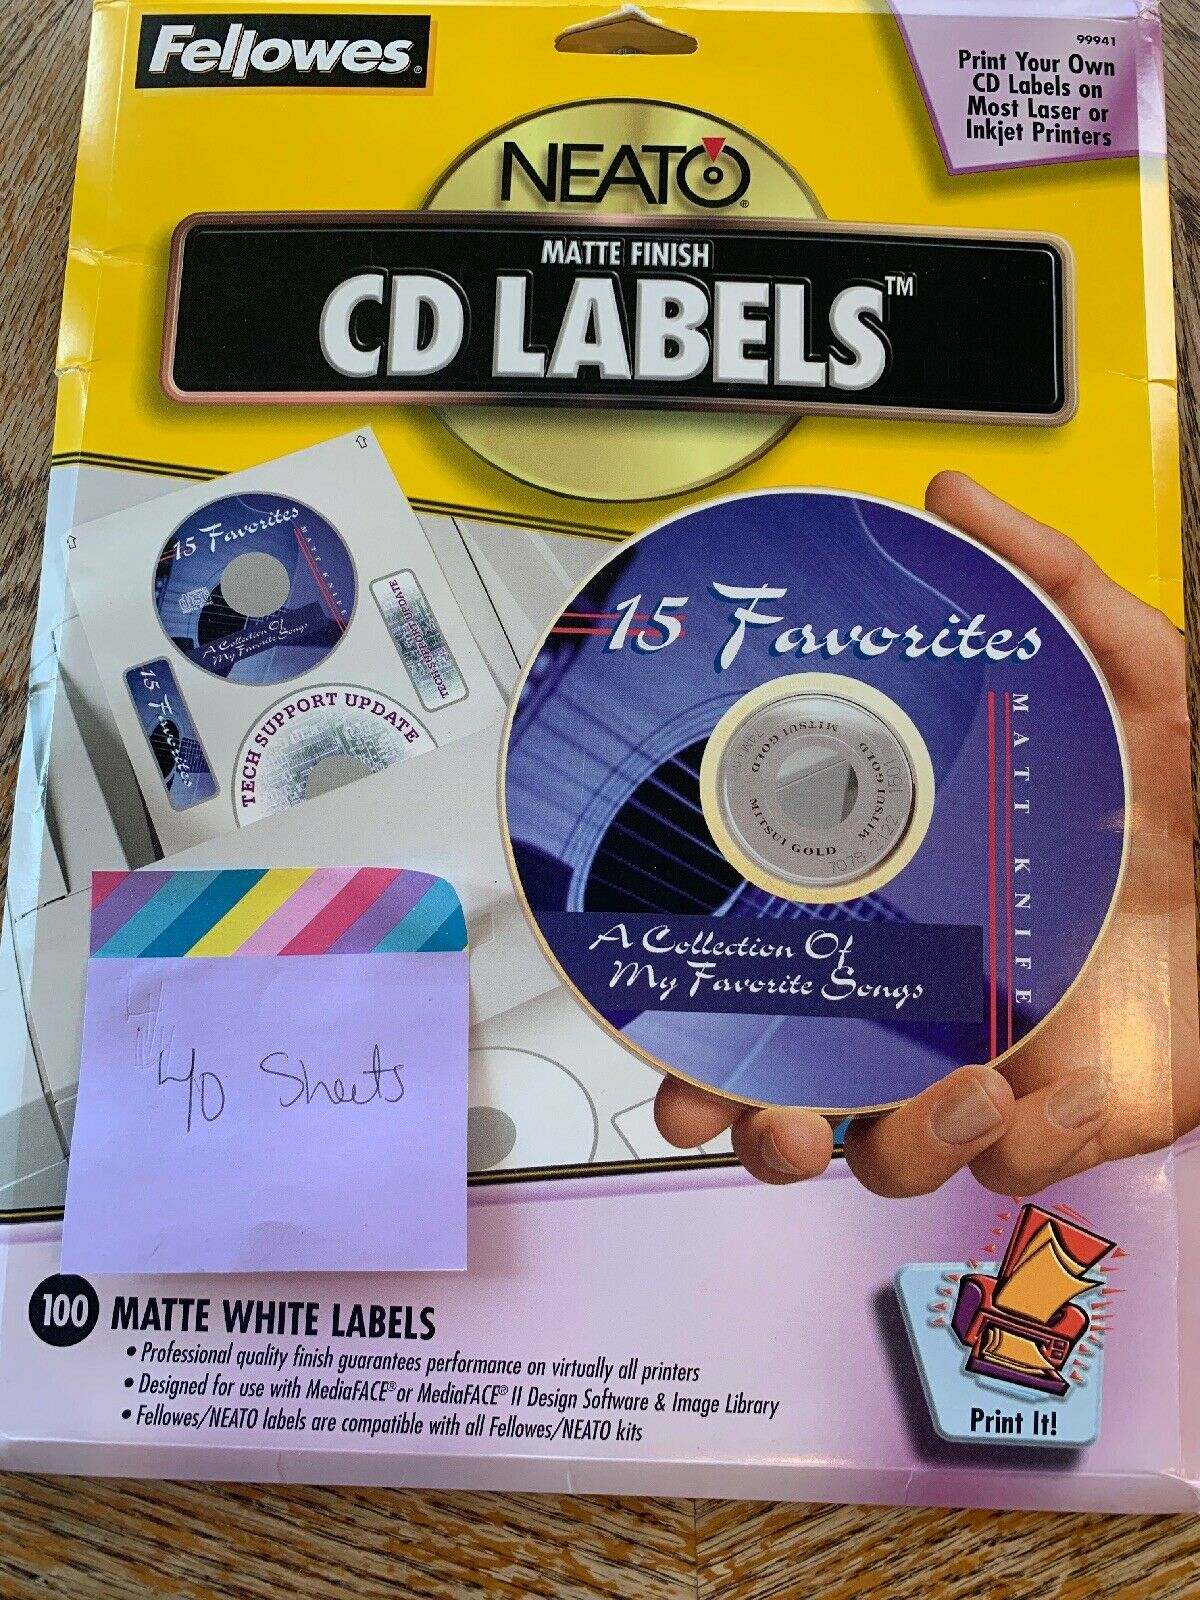 Fellowes Neato 99941 Matte Finish Cd Labels 80 Labels 40 Sheets For Sale Online